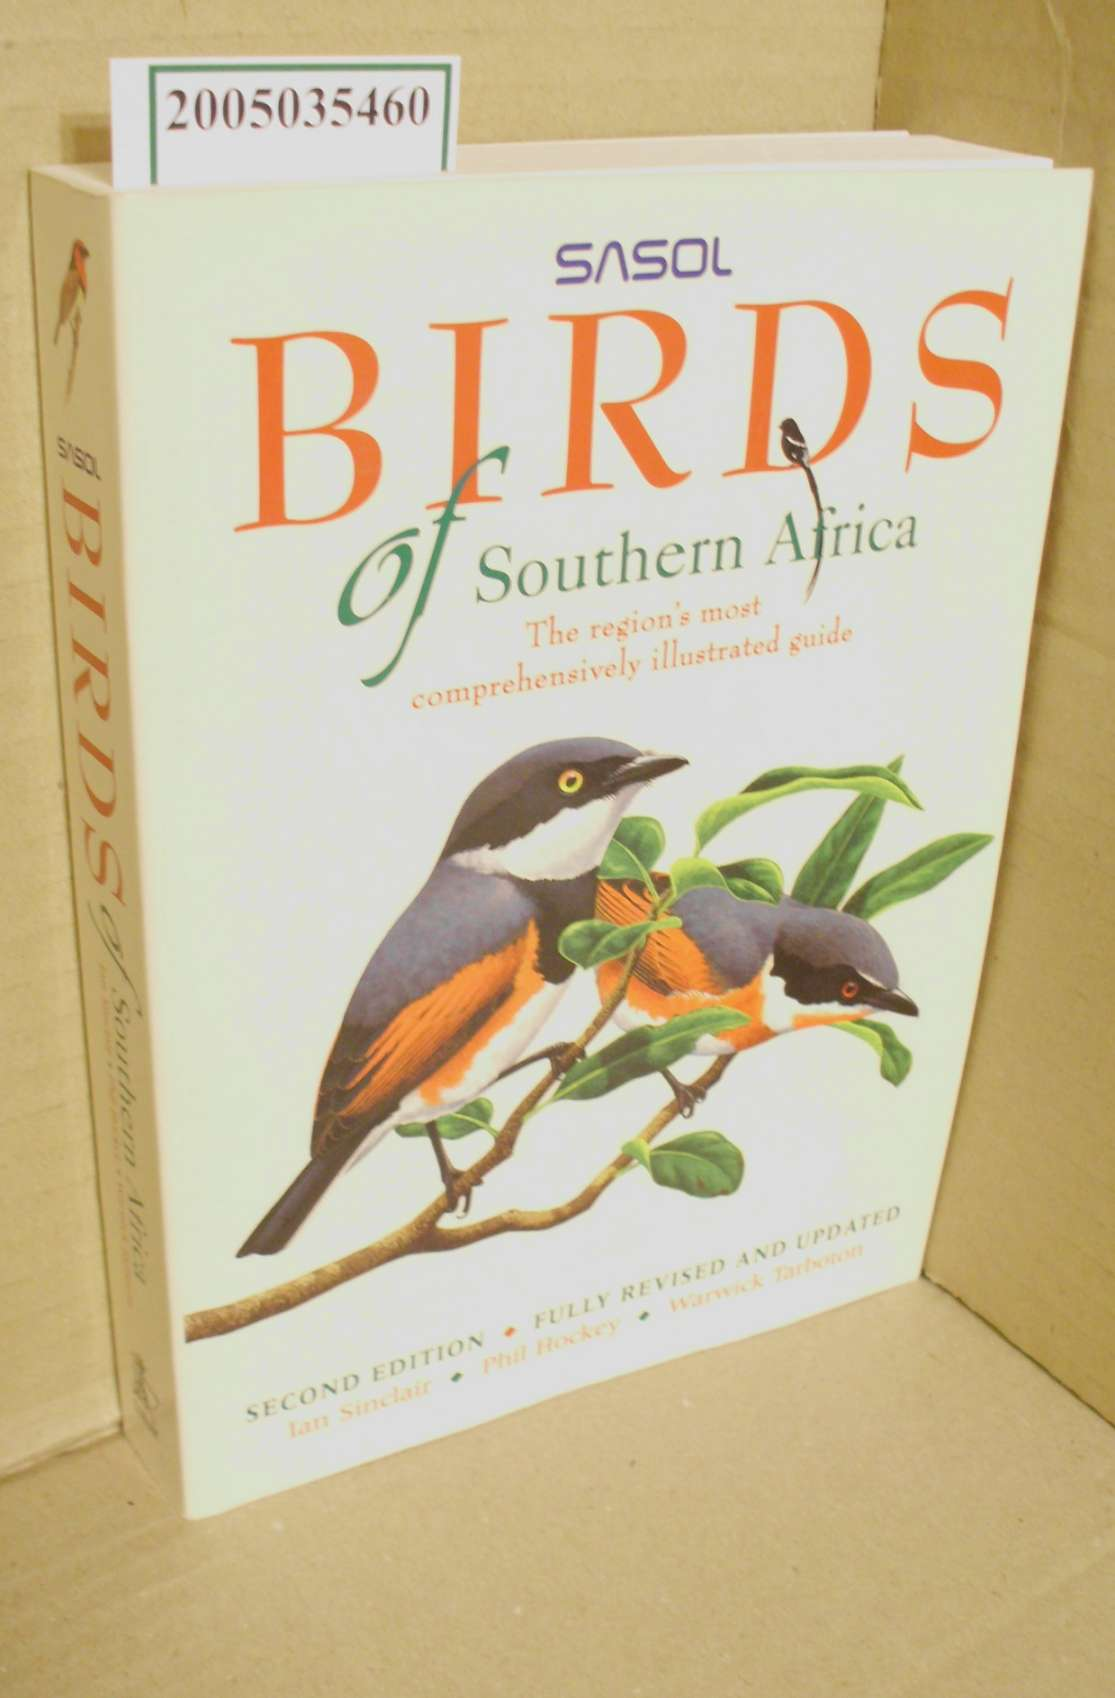 Sasol Birds of Southern Africa / The region